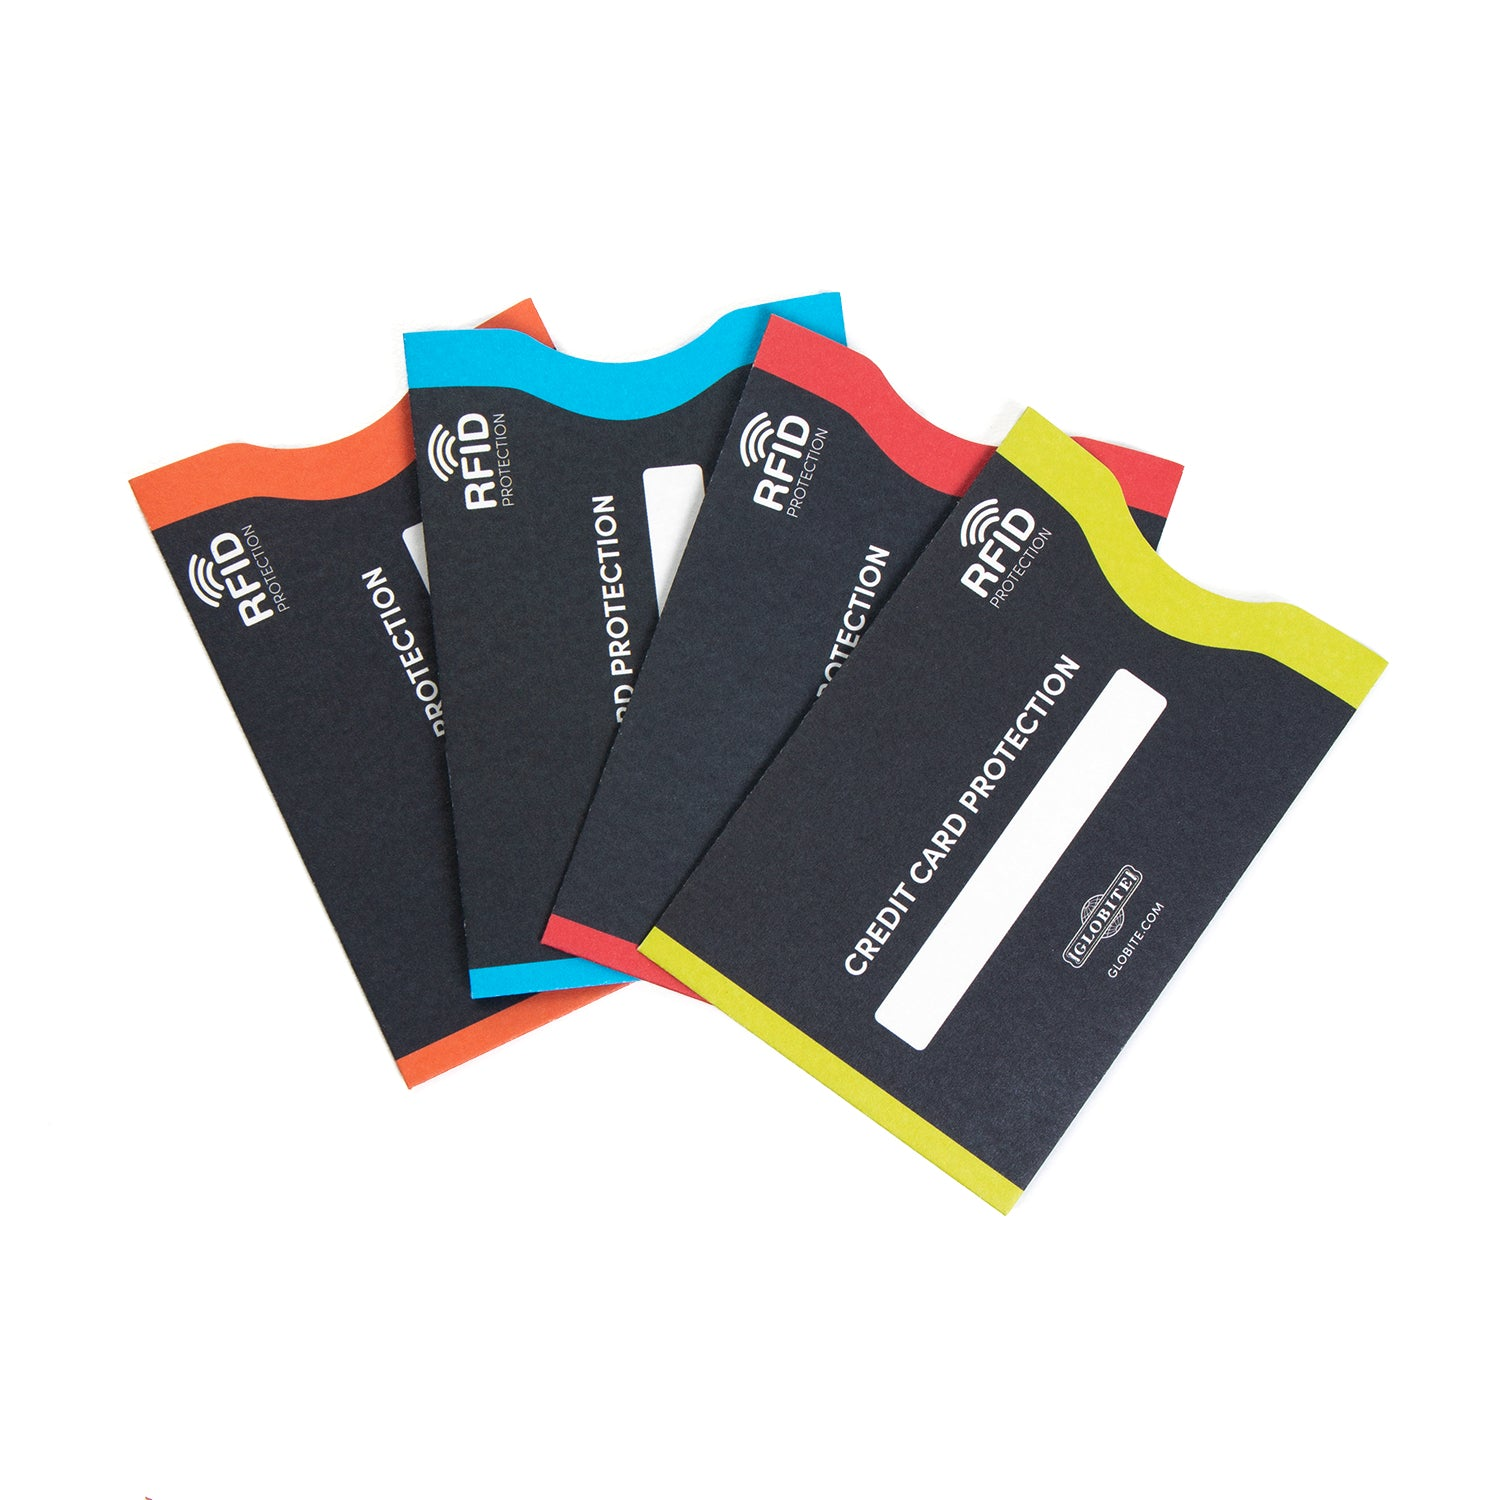 RFID Blocking Credit Card Protector 4pk - globite